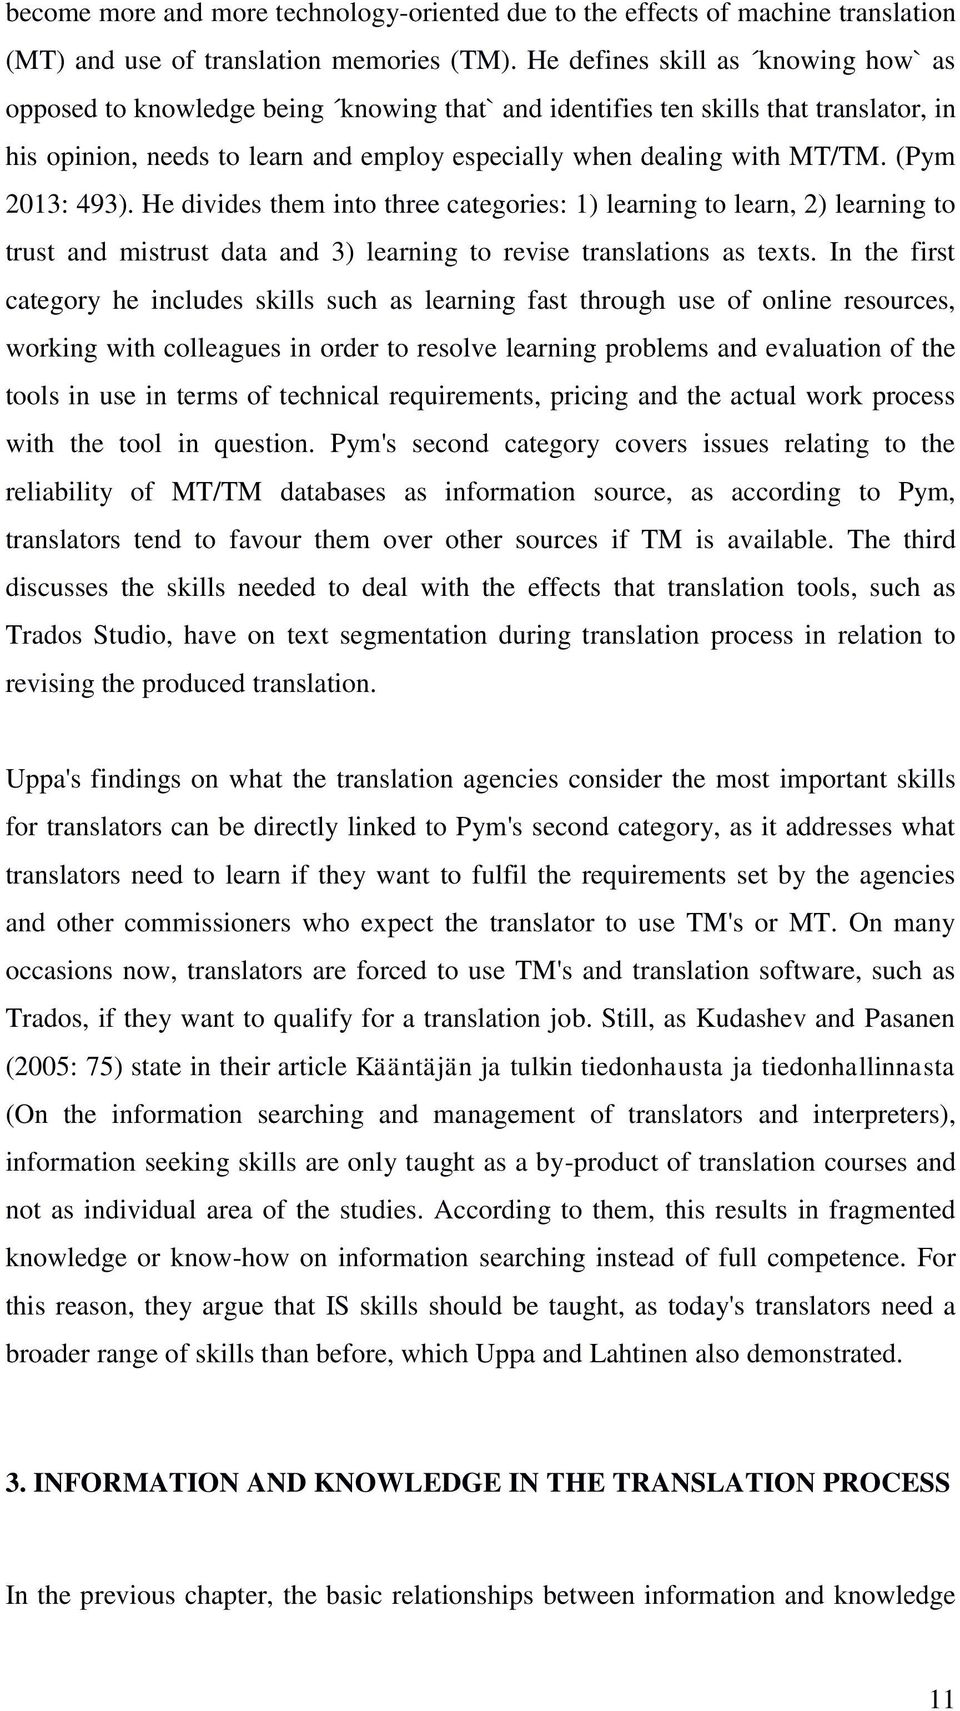 (Pym 2013: 493). He divides them into three categories: 1) learning to learn, 2) learning to trust and mistrust data and 3) learning to revise translations as texts.